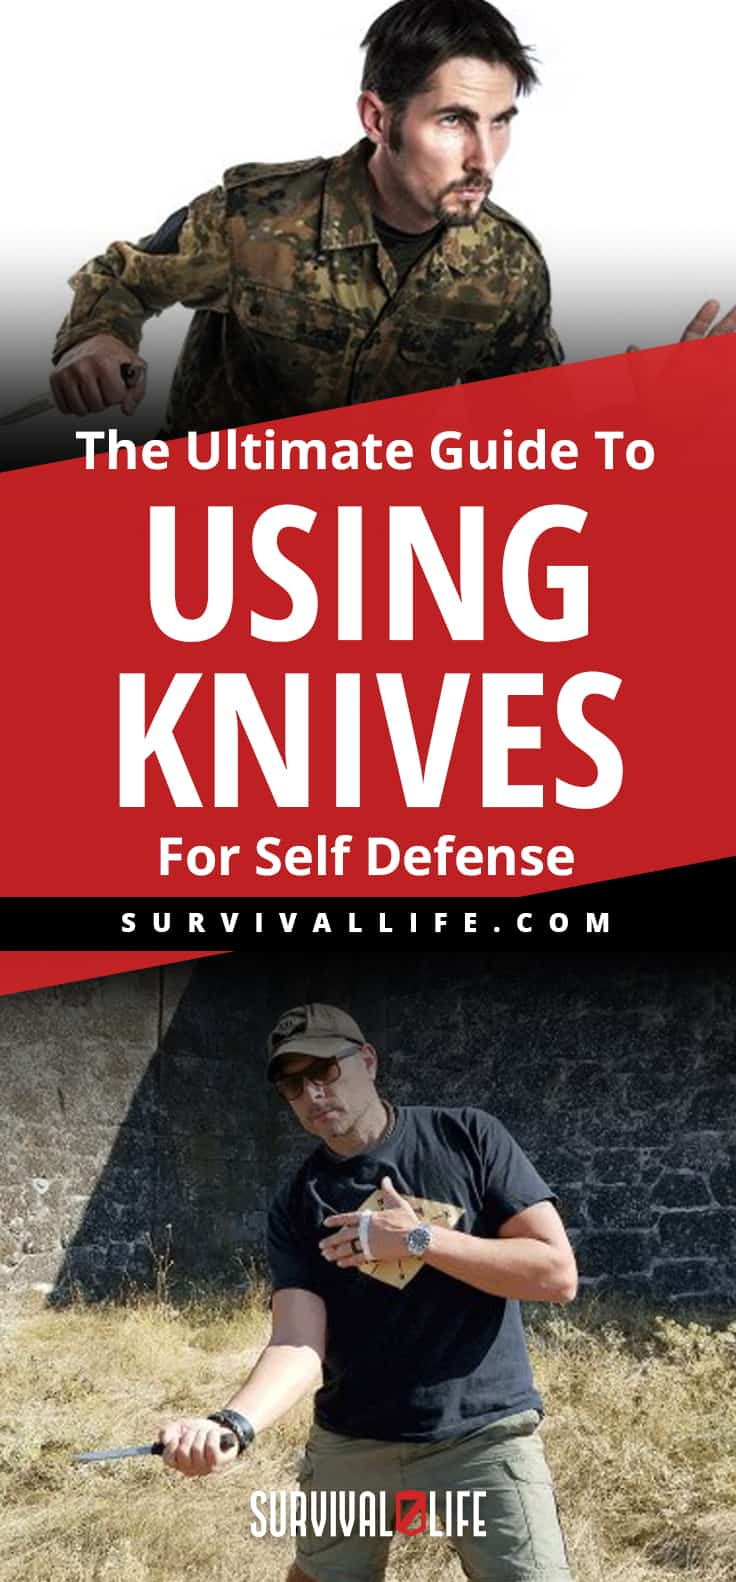 The Ultimate Guide To Using Knives For Self Defense | https://survivallife.com/using-knives-for-self-defense/